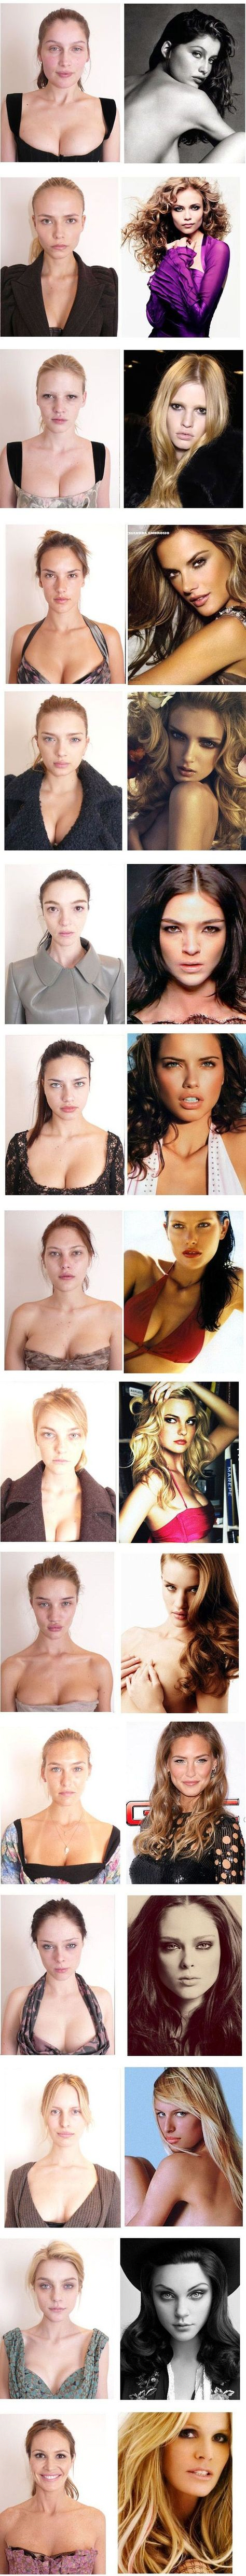 Supermodels without makeup- Remembering not to compare yourself to the makeup, hair, lighting, photography and retouching you see every day!